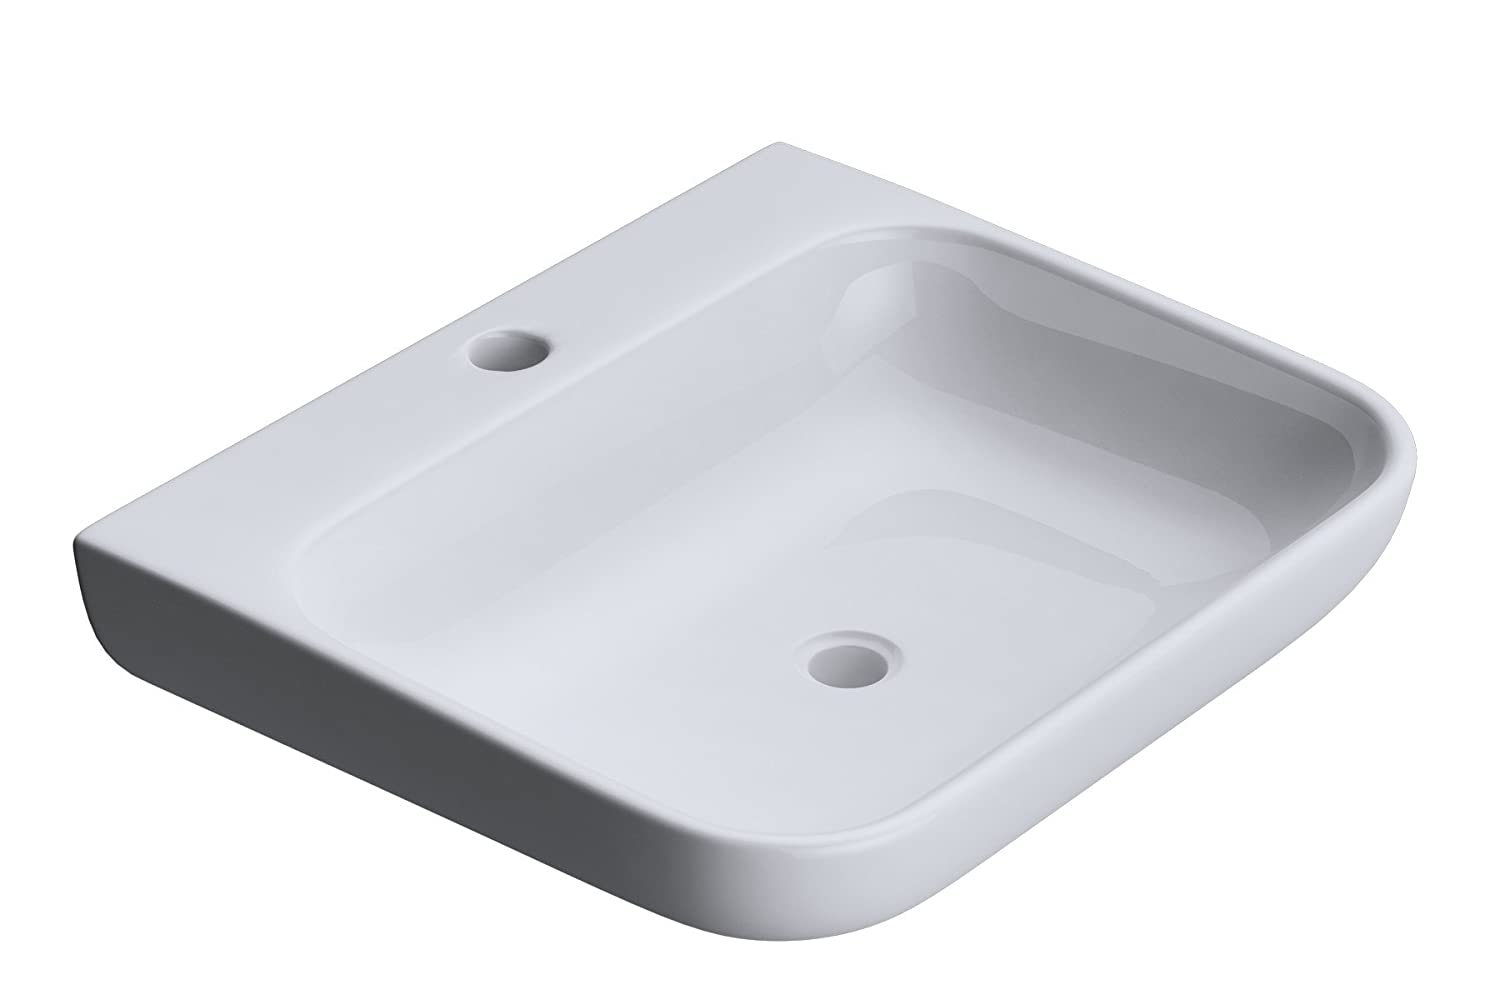 480 x 410 x 110mm (WxDxH) Durovin Bathrooms Luxurious Stone Resin Wash Basin   Wall Hung Or Counter Top Mount Rounded Bathroom Sink   One Tap Hole